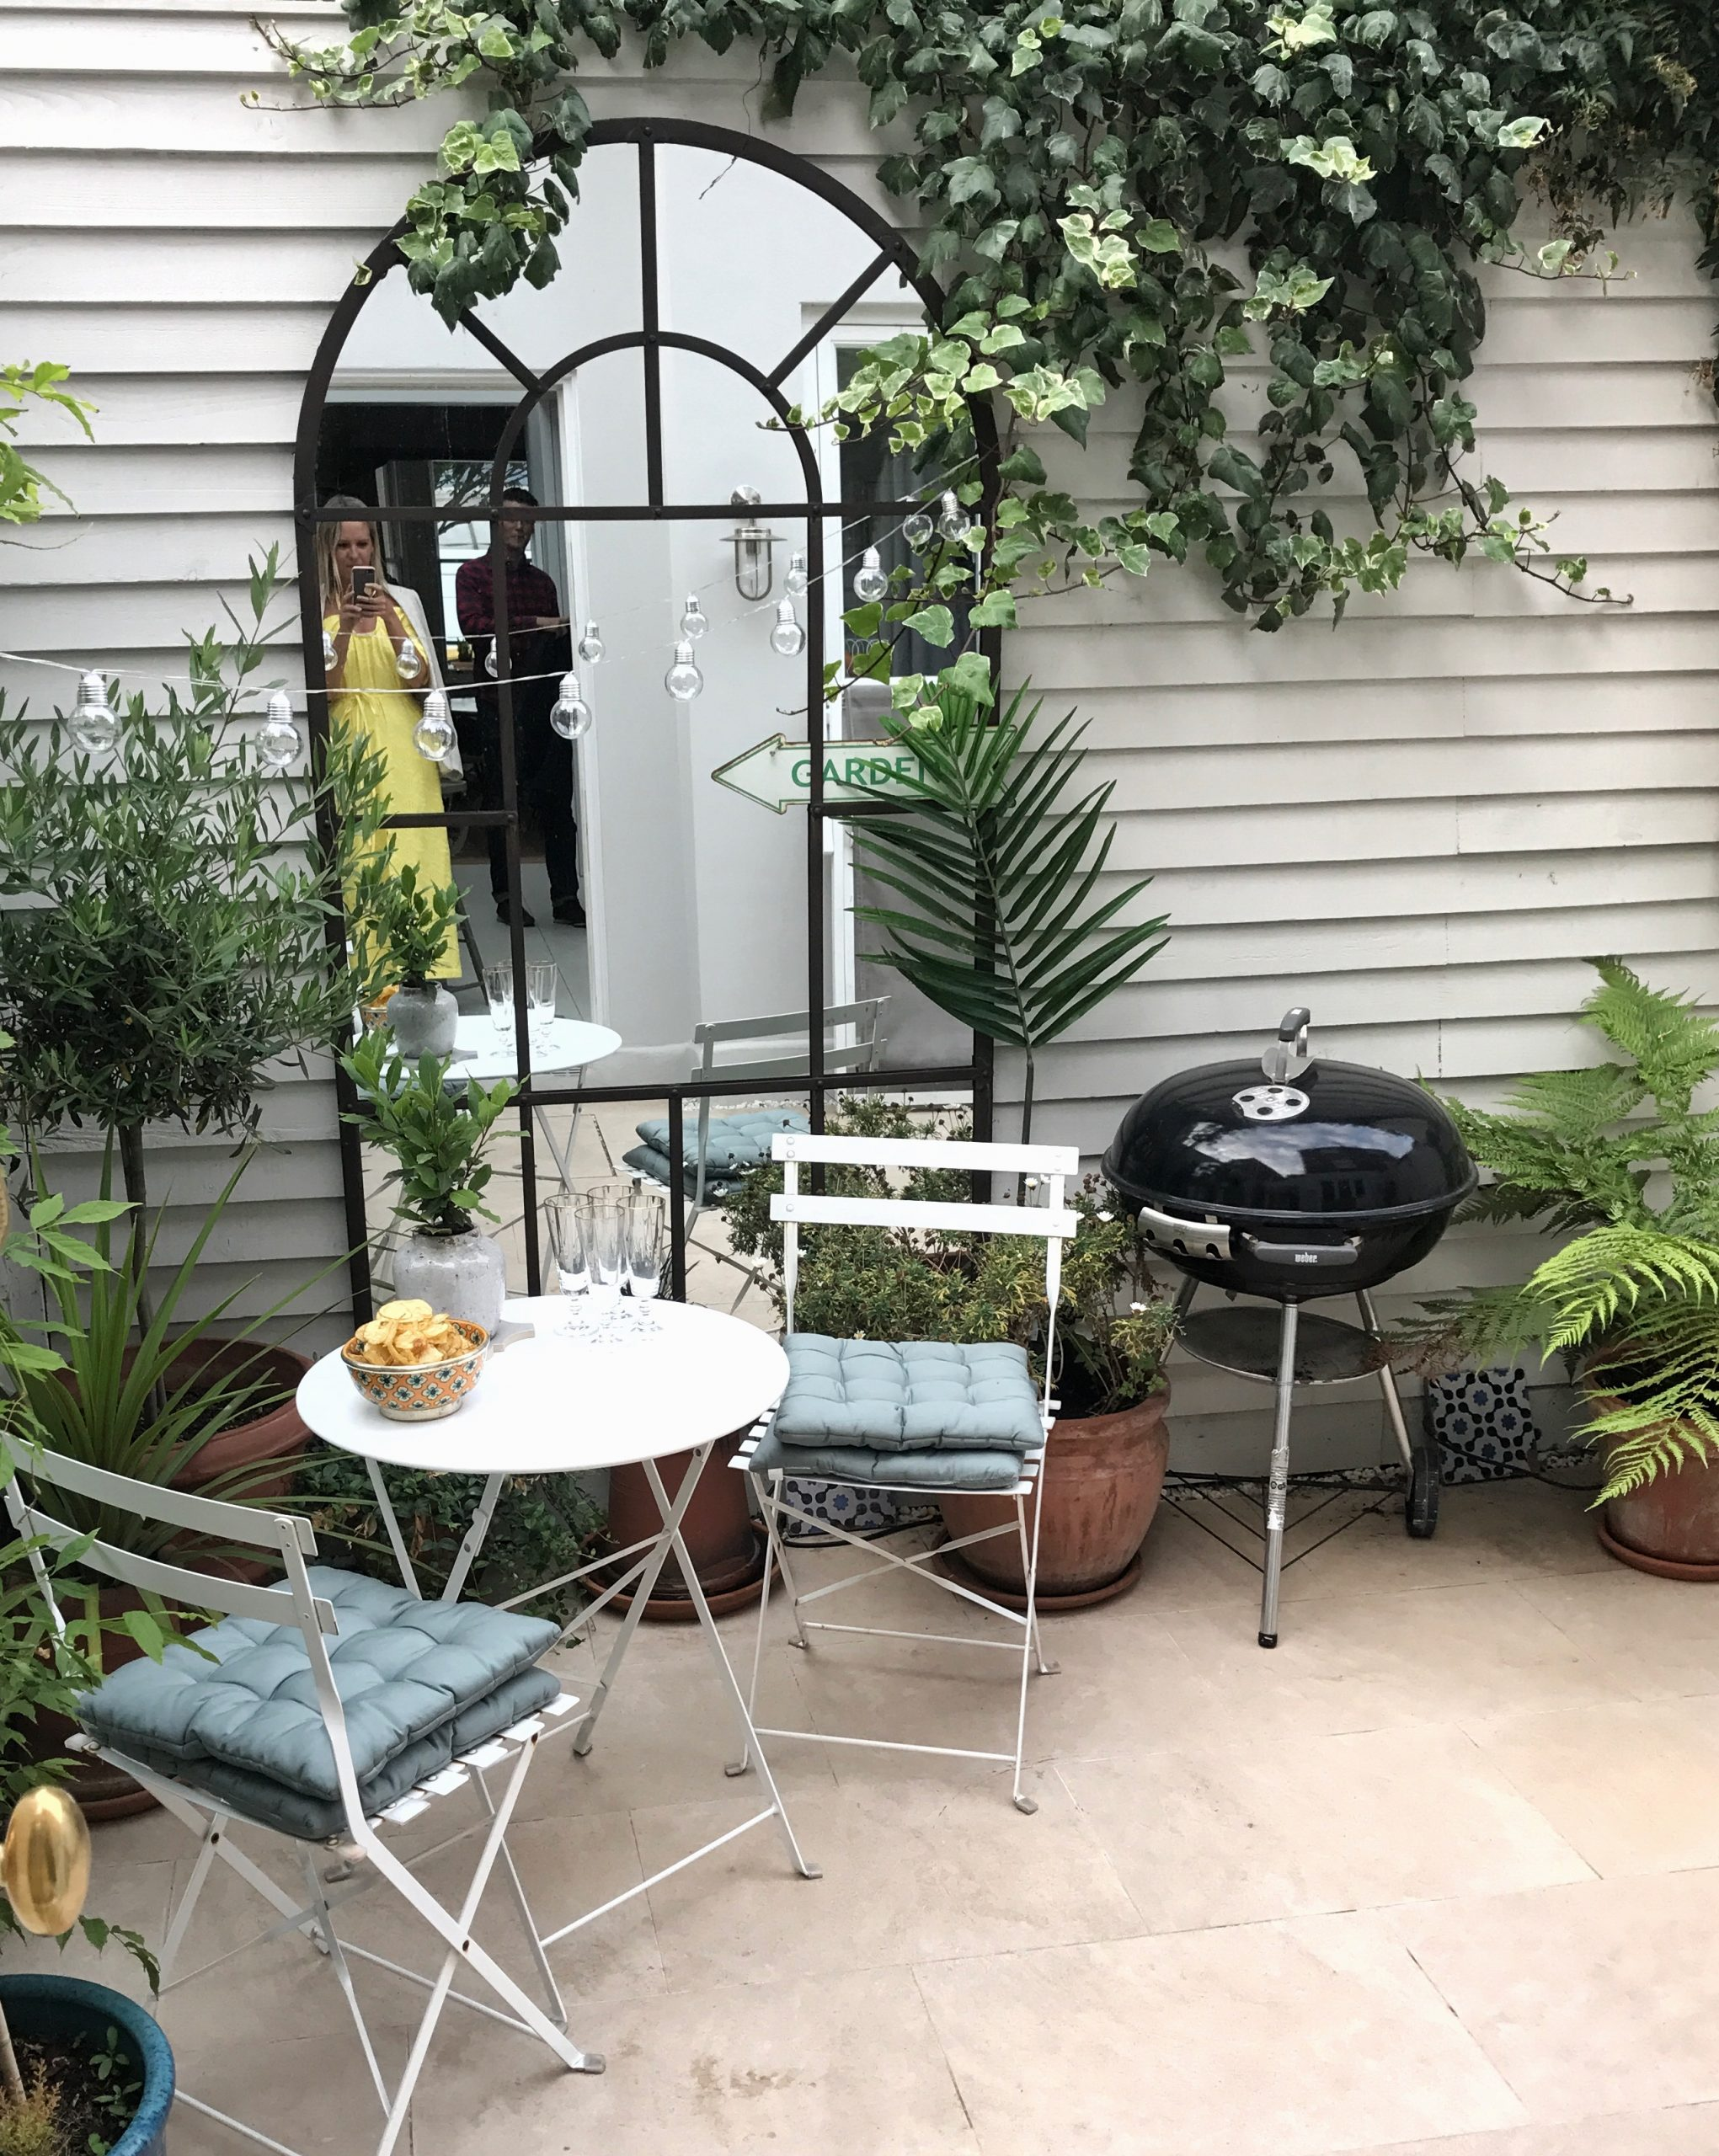 HOW TO STYLE SMALL SPACES COURTYARD GARDENS   The Frugality